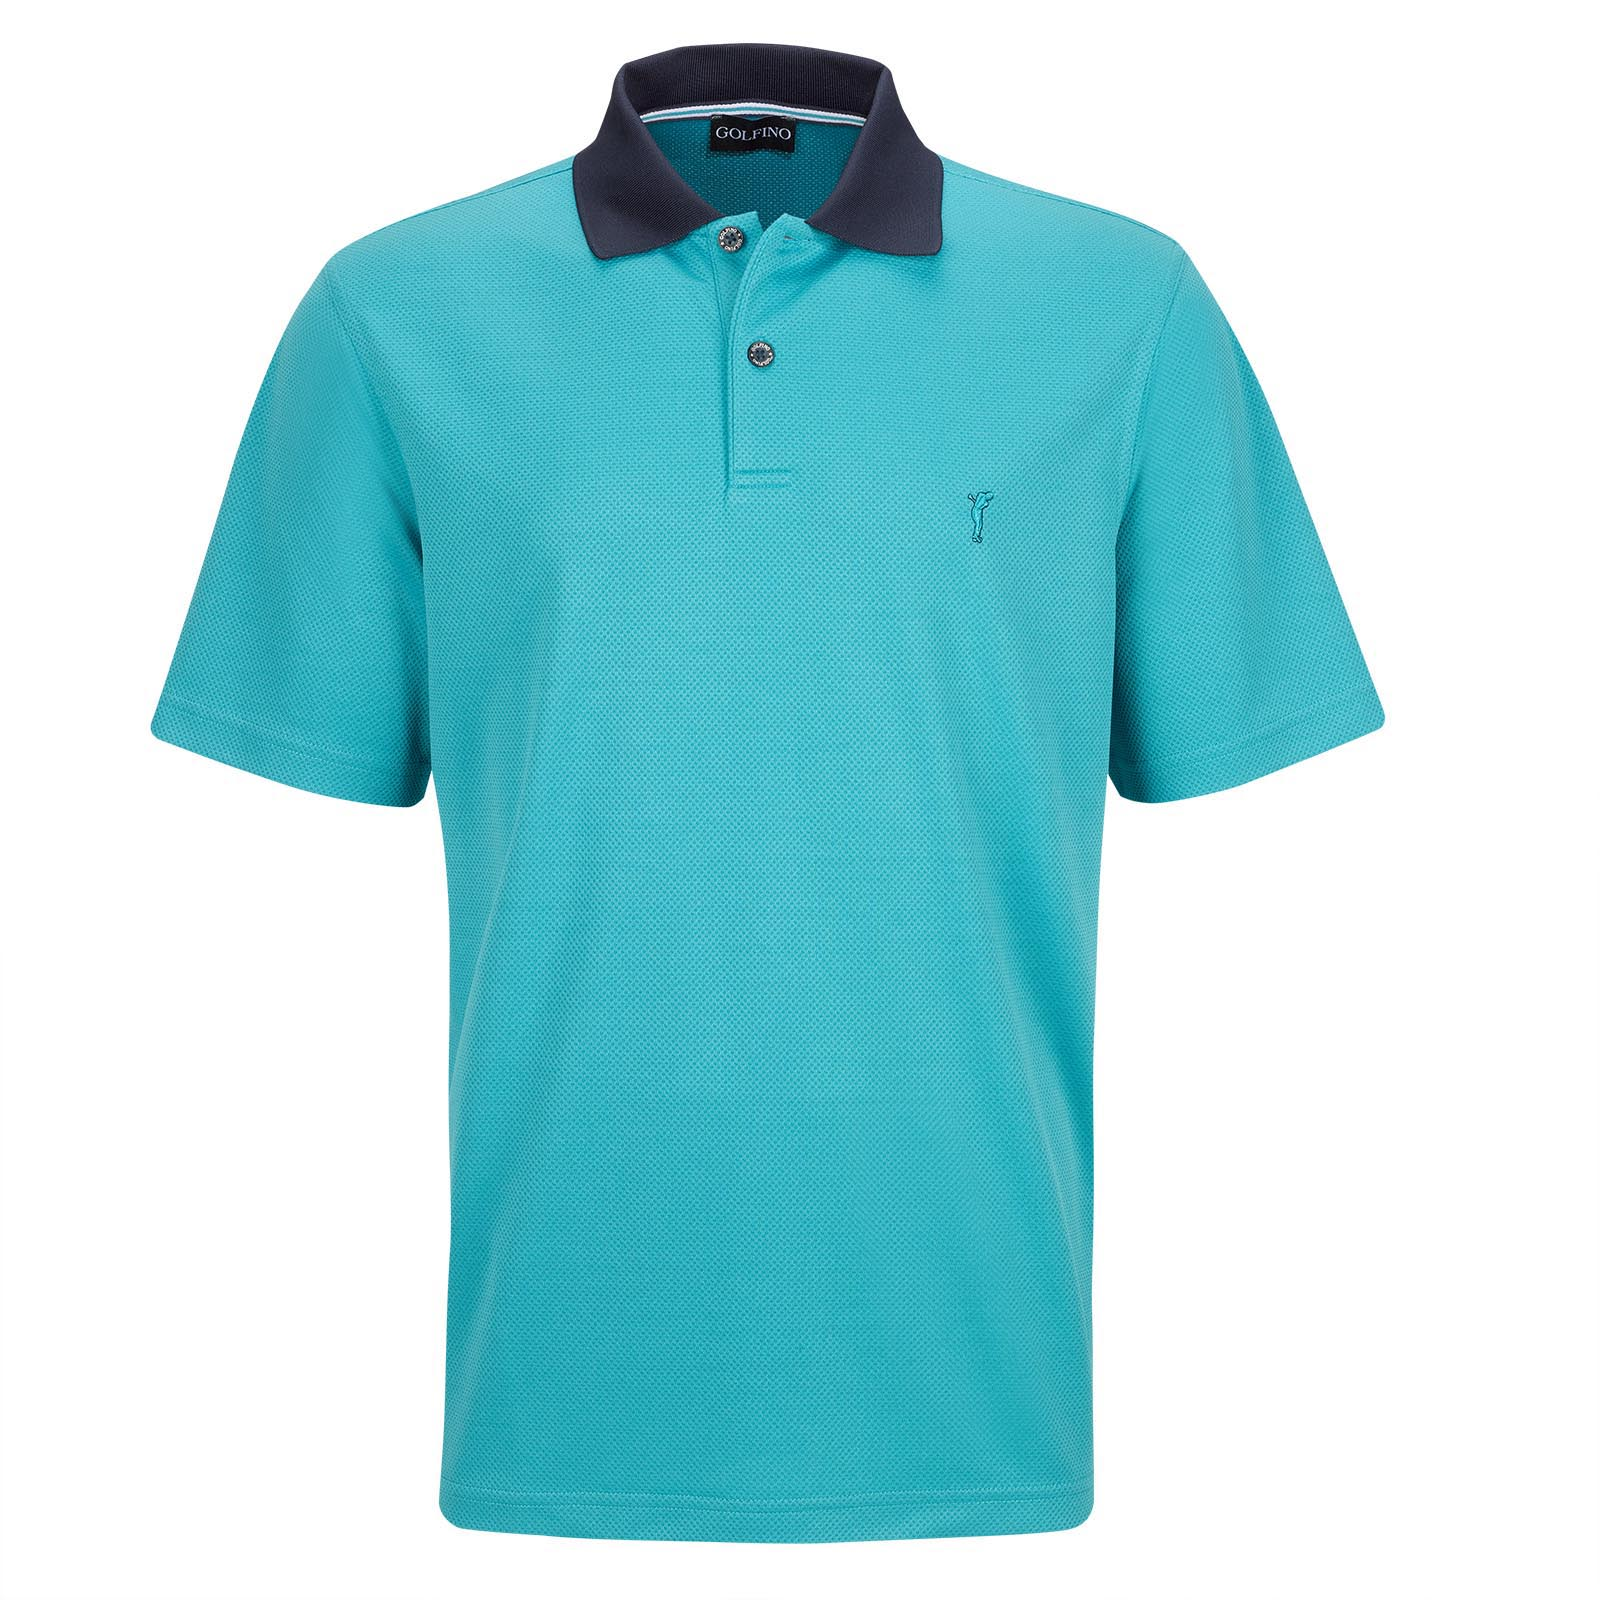 Men's short sleeve Kafetex® golf polo in regular fit with moisture management